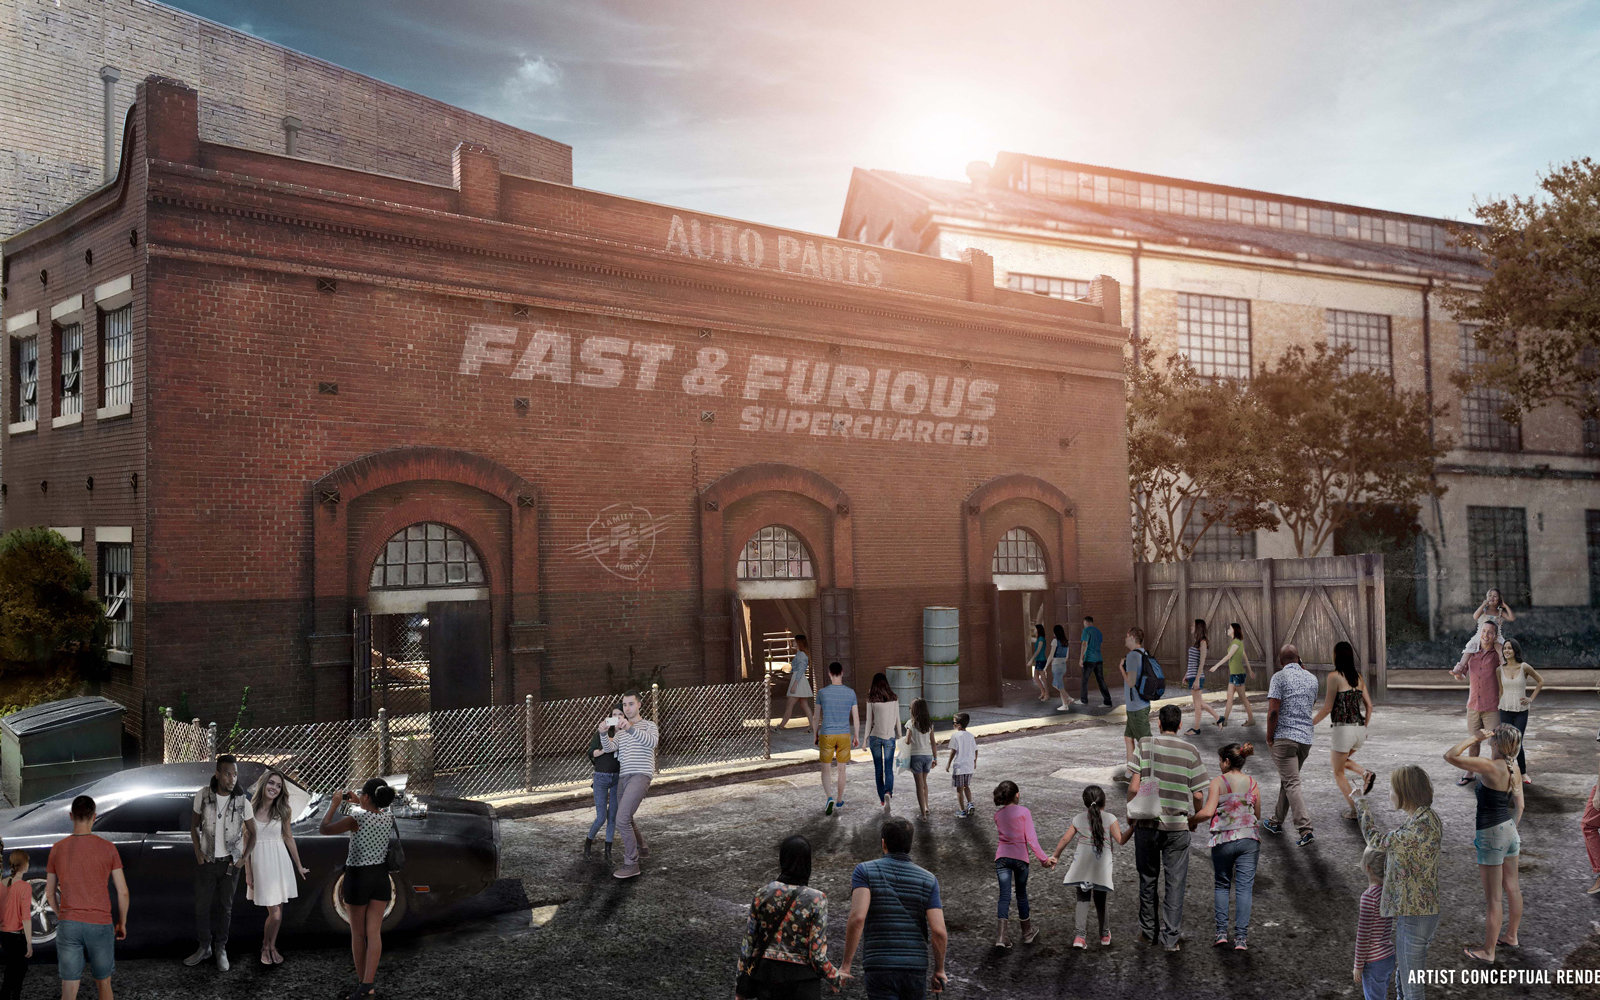 Fast & Furious Supercharged — Universal Studios